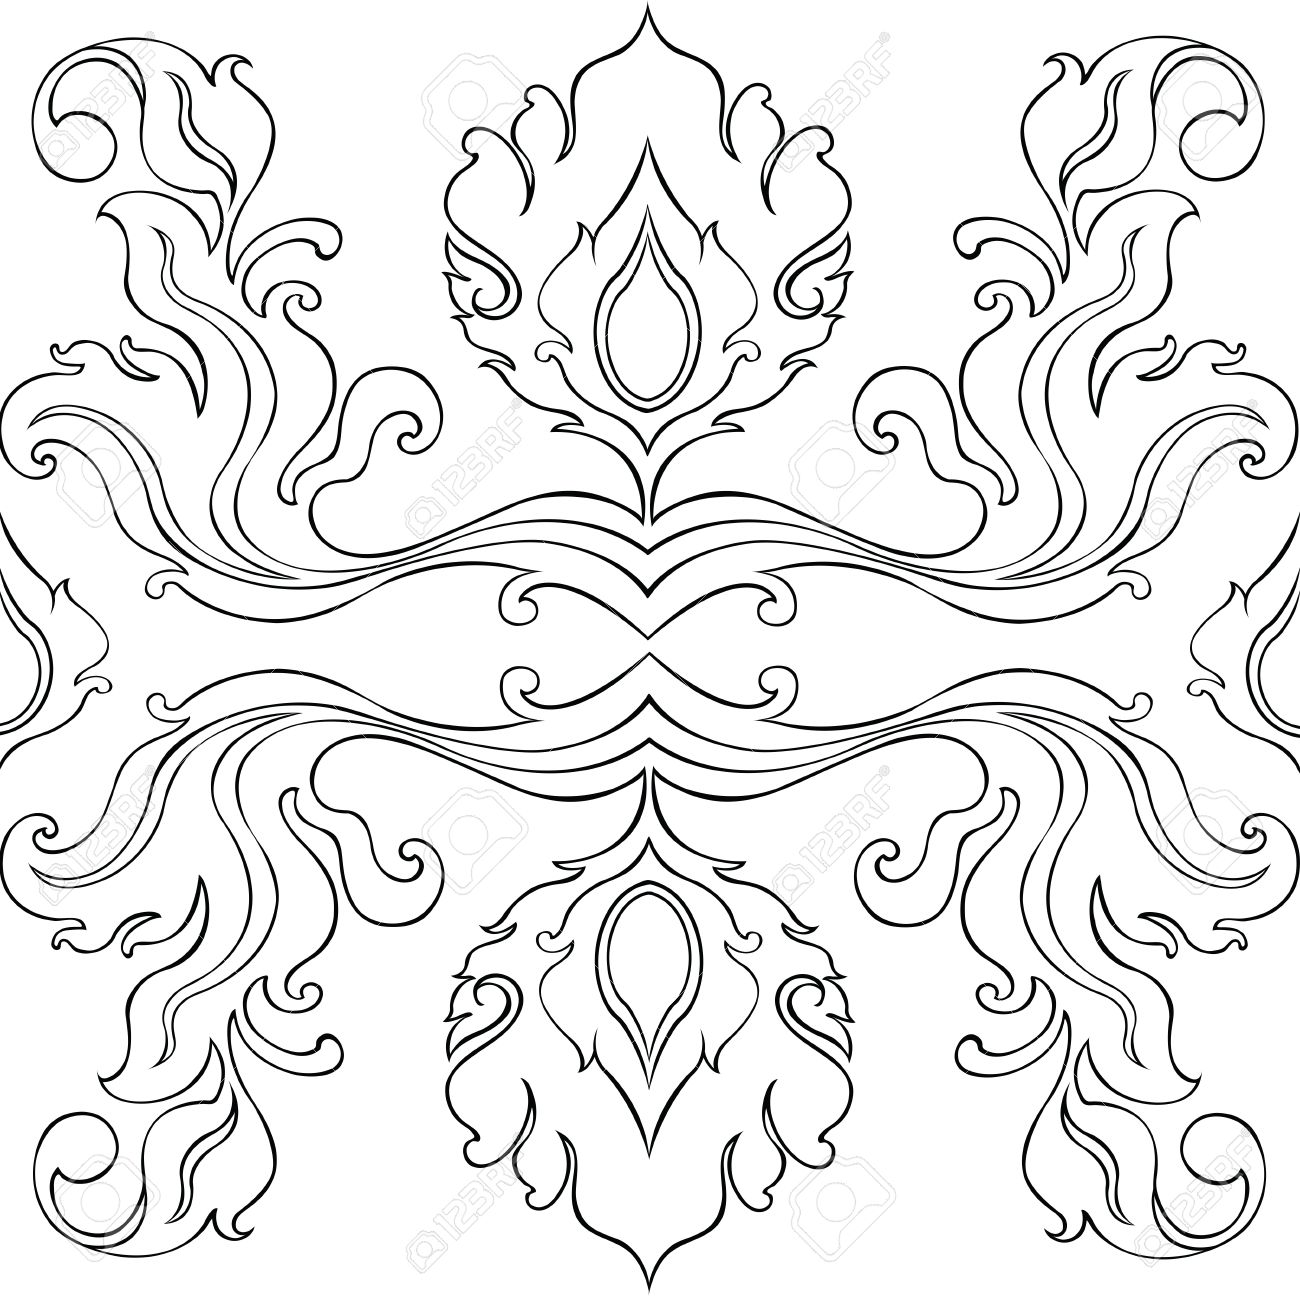 1300x1300 Pattern Flowers And Leave Thai Art Line Graphic Design From Pencil